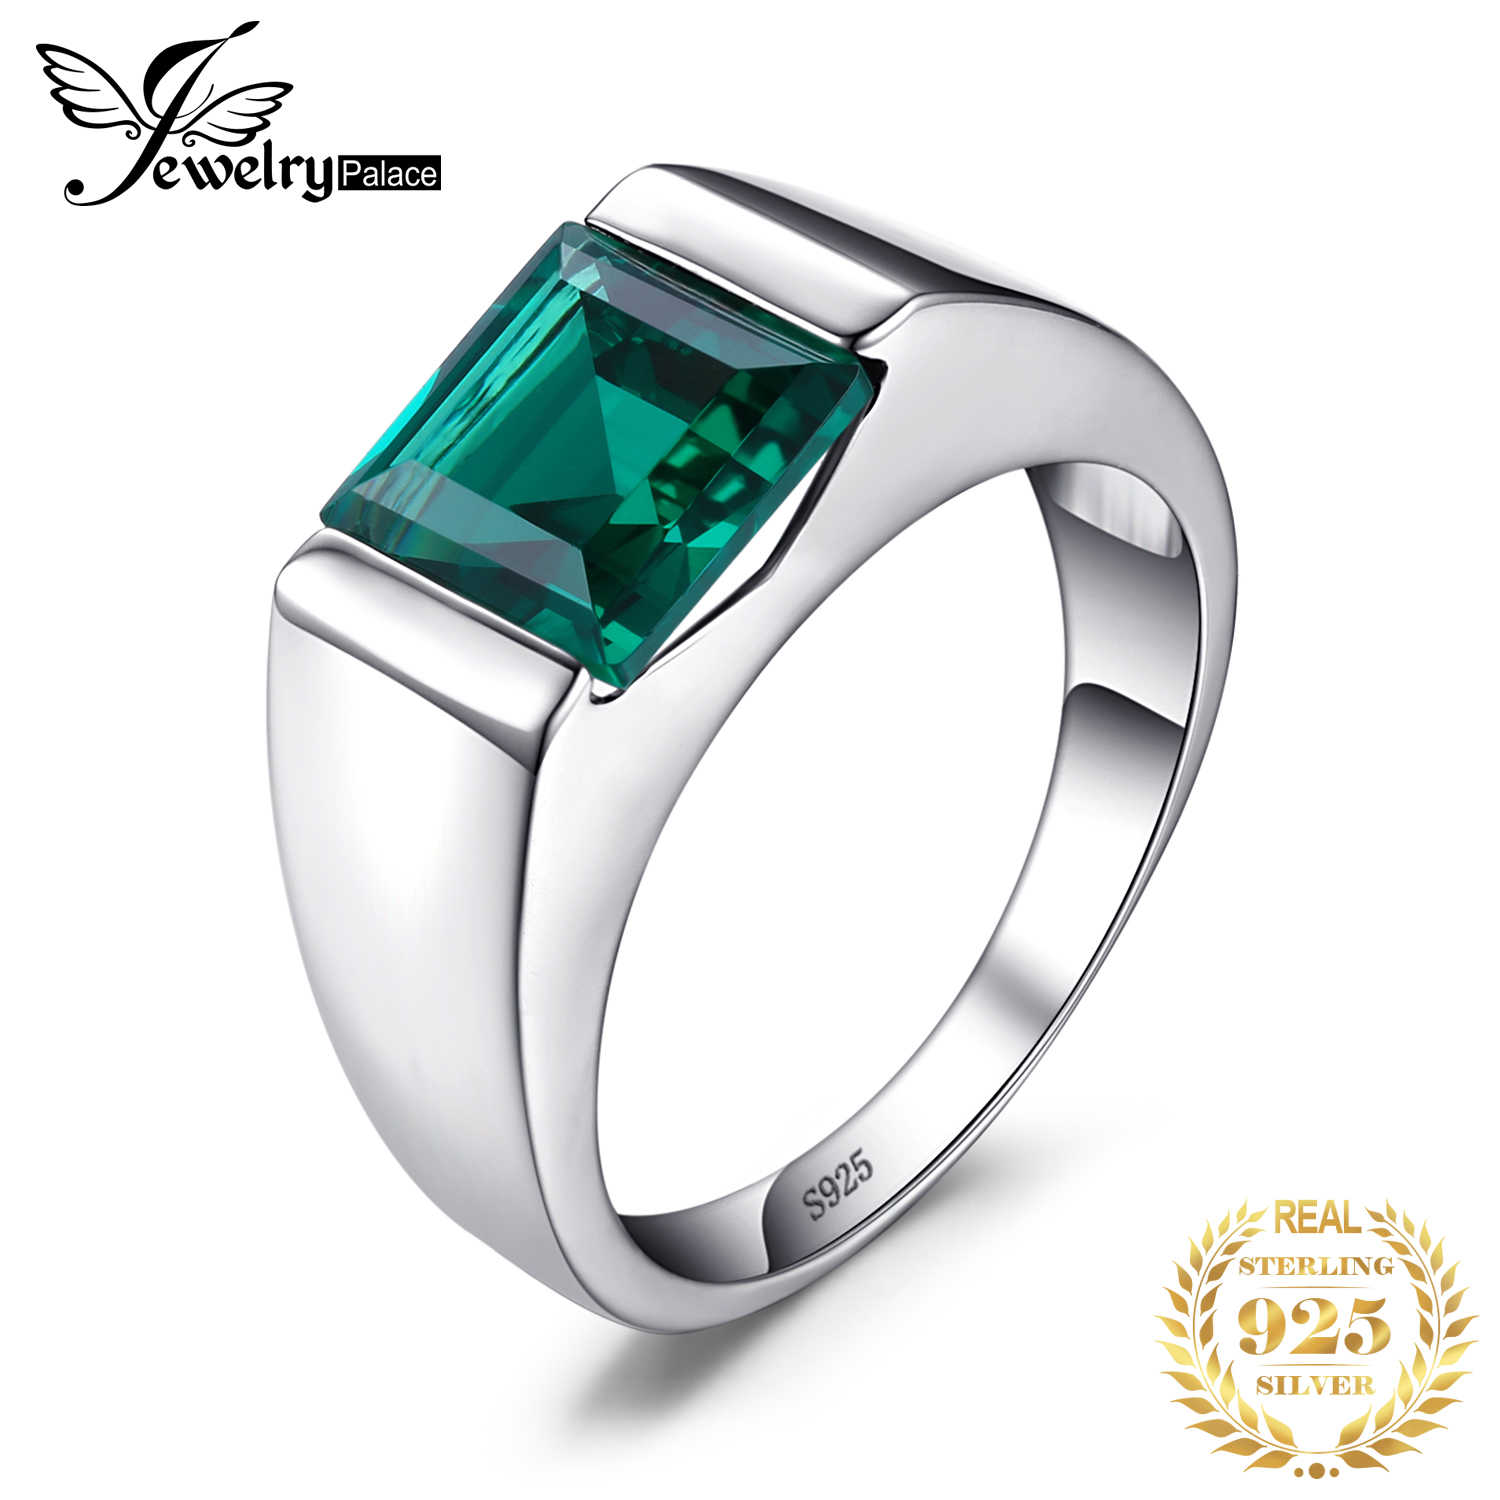 Jewpalace Simulated Nano Emerald Ring 925 Sterling Silver Rings For Men Wedding Rings Silver 925 Gemstones Jewelry Fine Jewelry Emerald Engagement Ring Sliver Ringsliver F Aliexpress